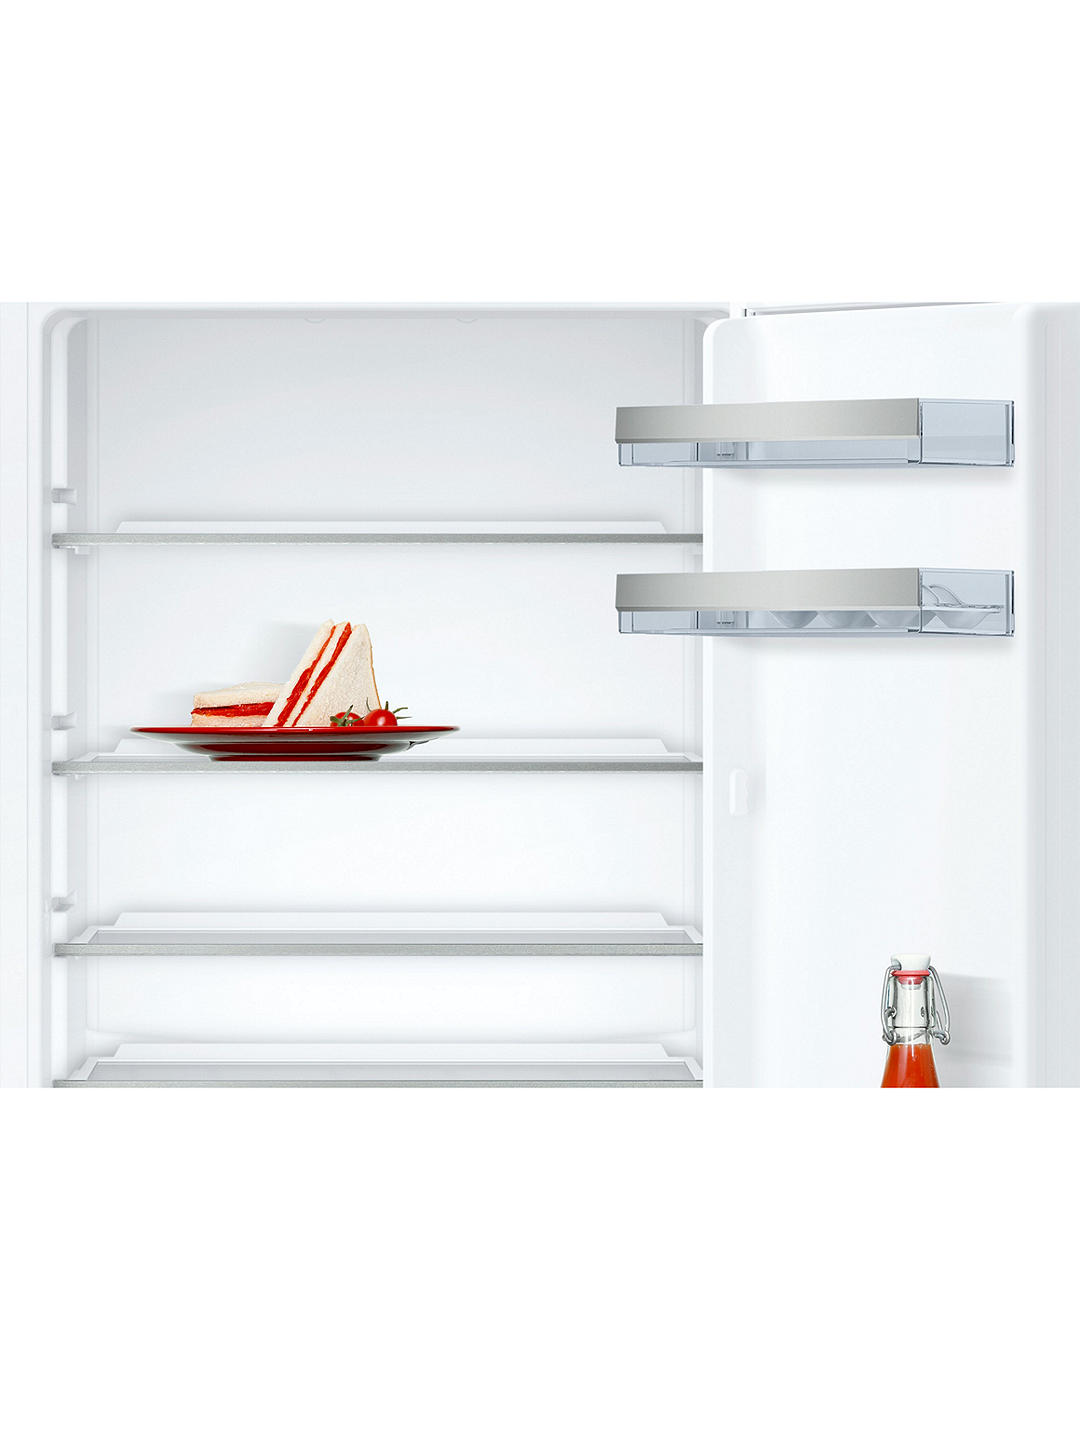 Buy Neff KI5852F30G Integrated Fridge Freezer, A++ Energy Rating, 56cm Wide Online at johnlewis.com